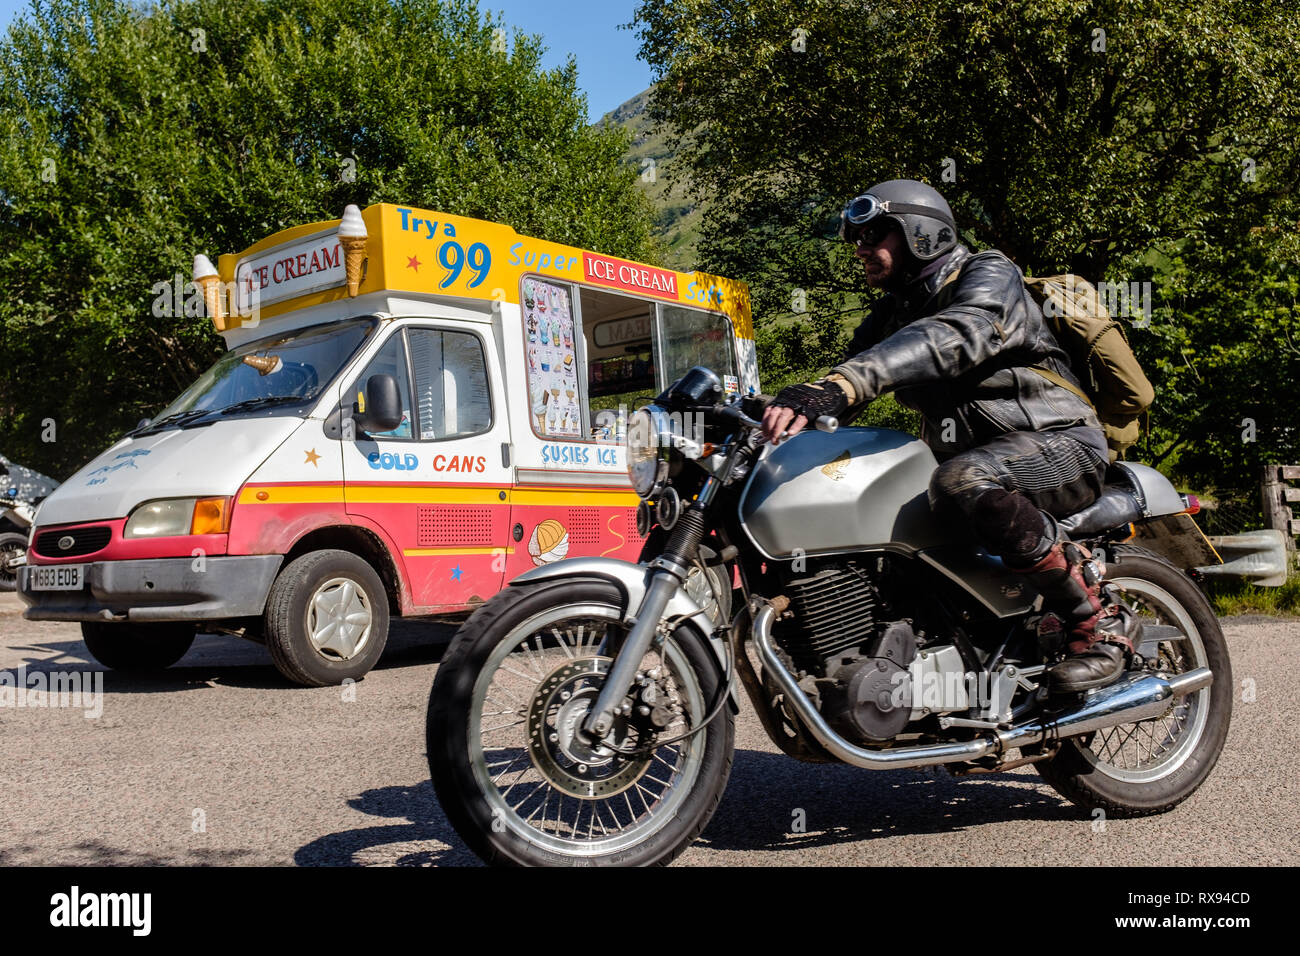 A motorcyclist passes ice cream van parked during sunny summer weather in the scottish highlands, glen nevis fort william scotland uk - Stock Image